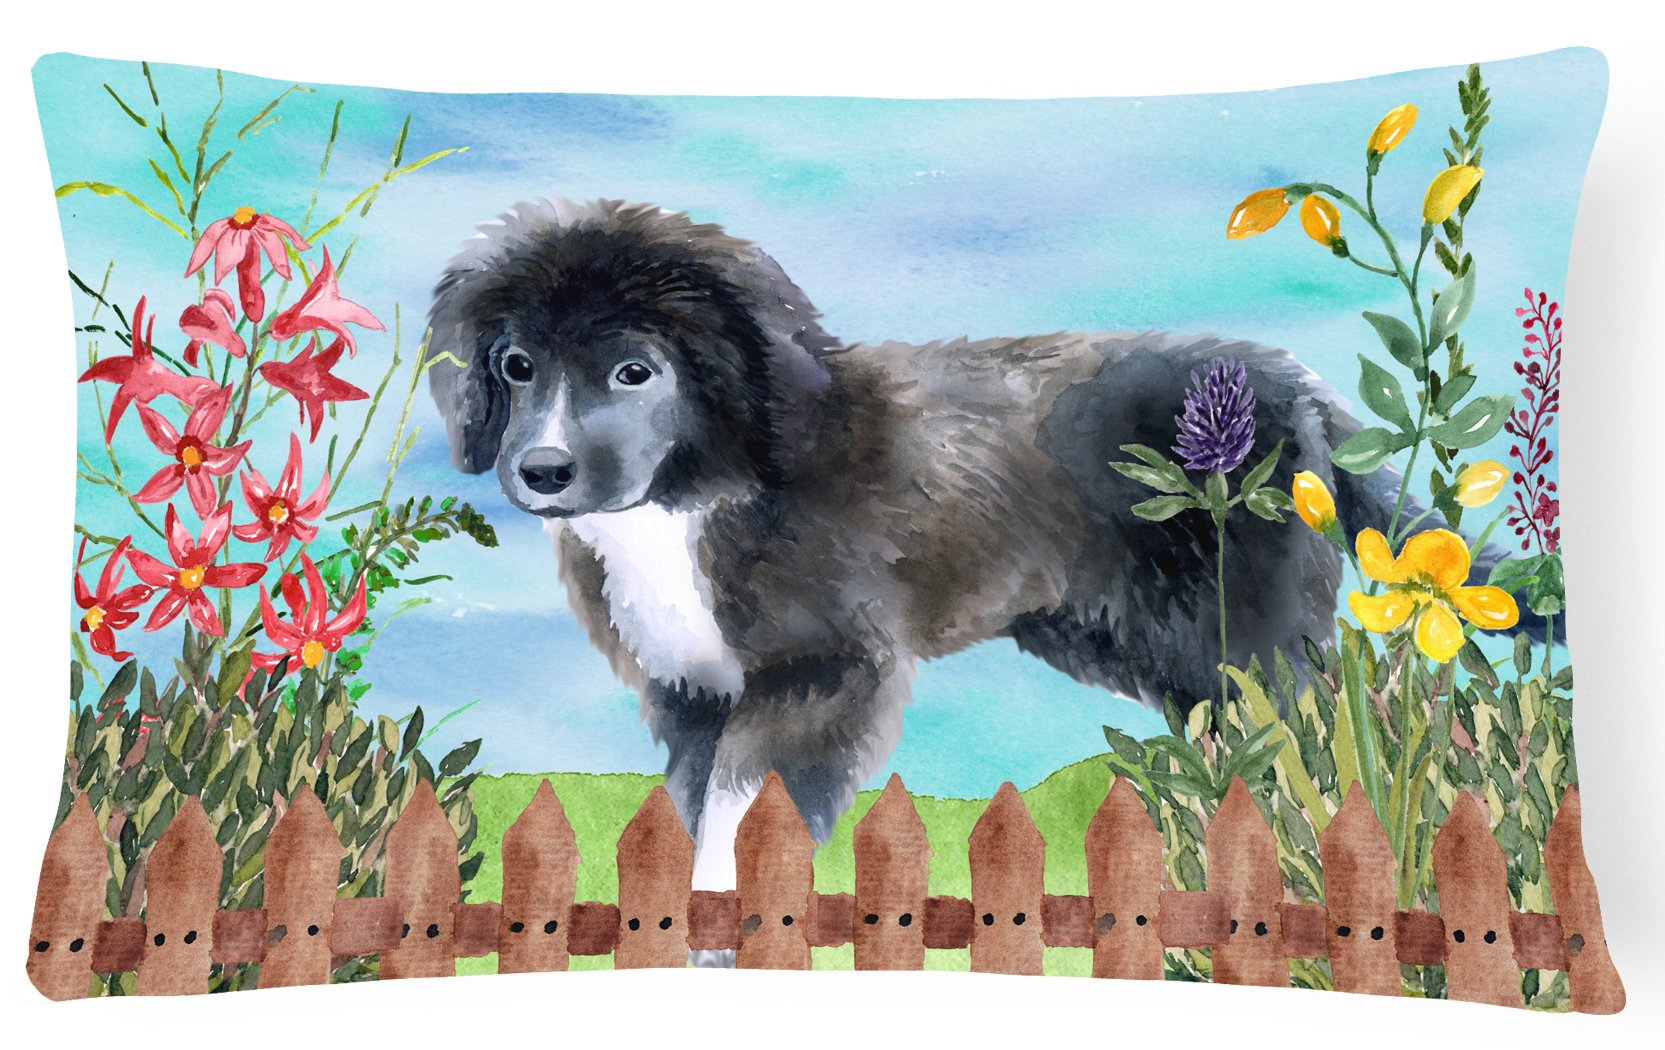 Newfoundland Puppy Spring Canvas Fabric Decorative Pillow CK1261PW1216 by Caroline's Treasures